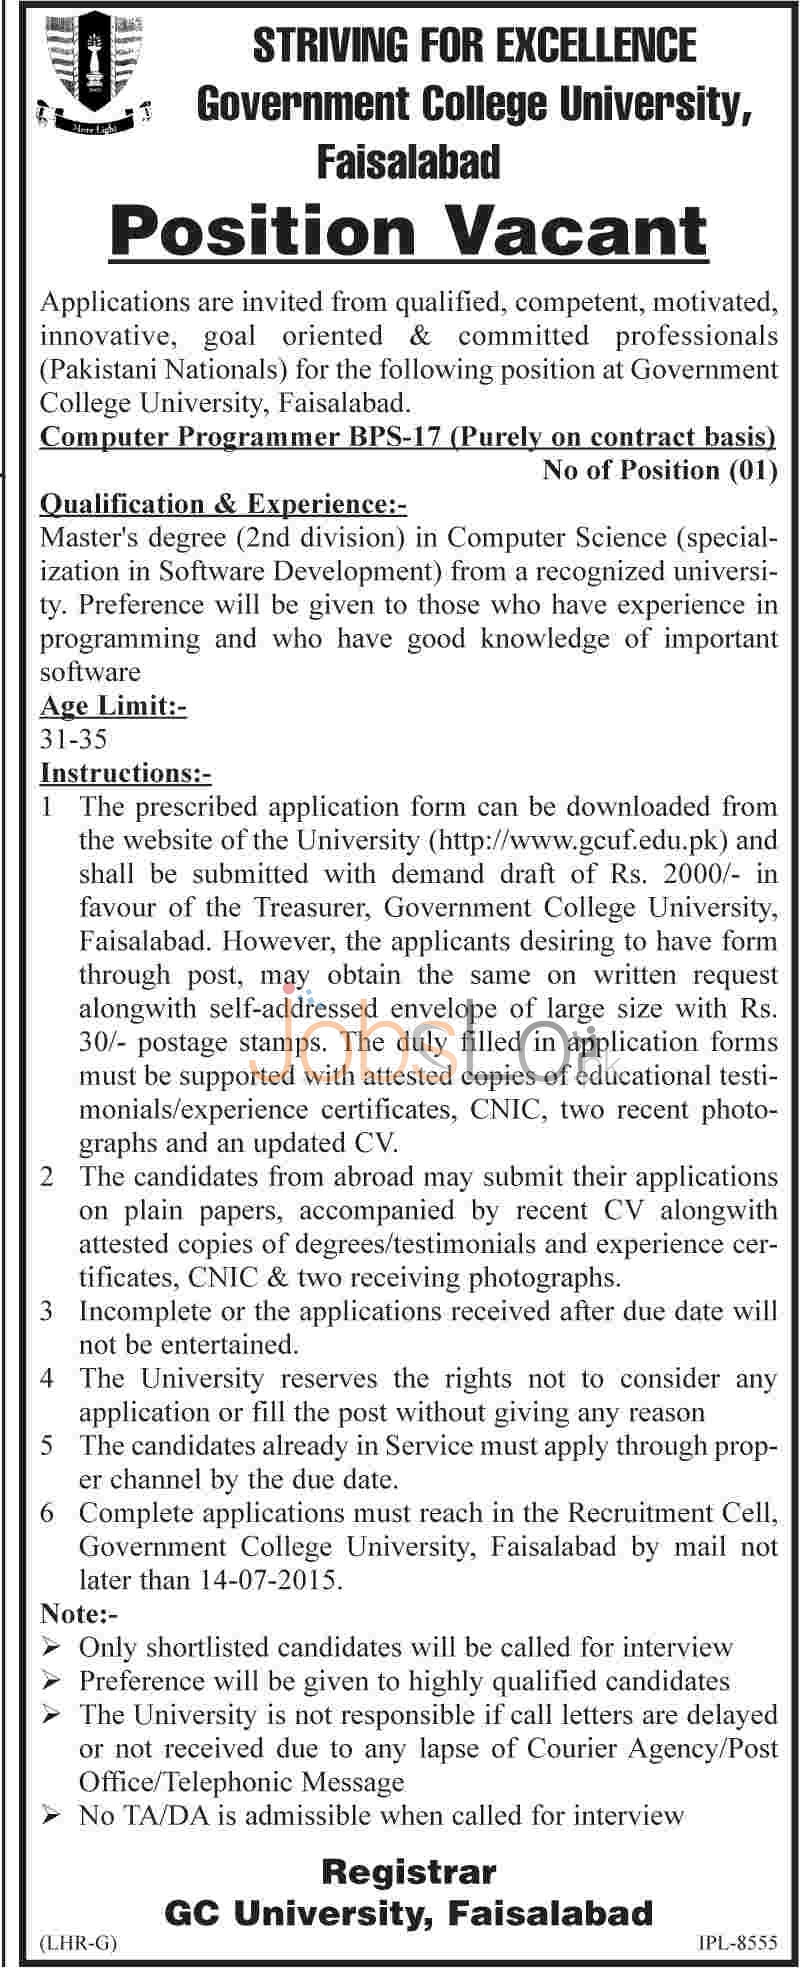 GC University Faisalabad Jobs